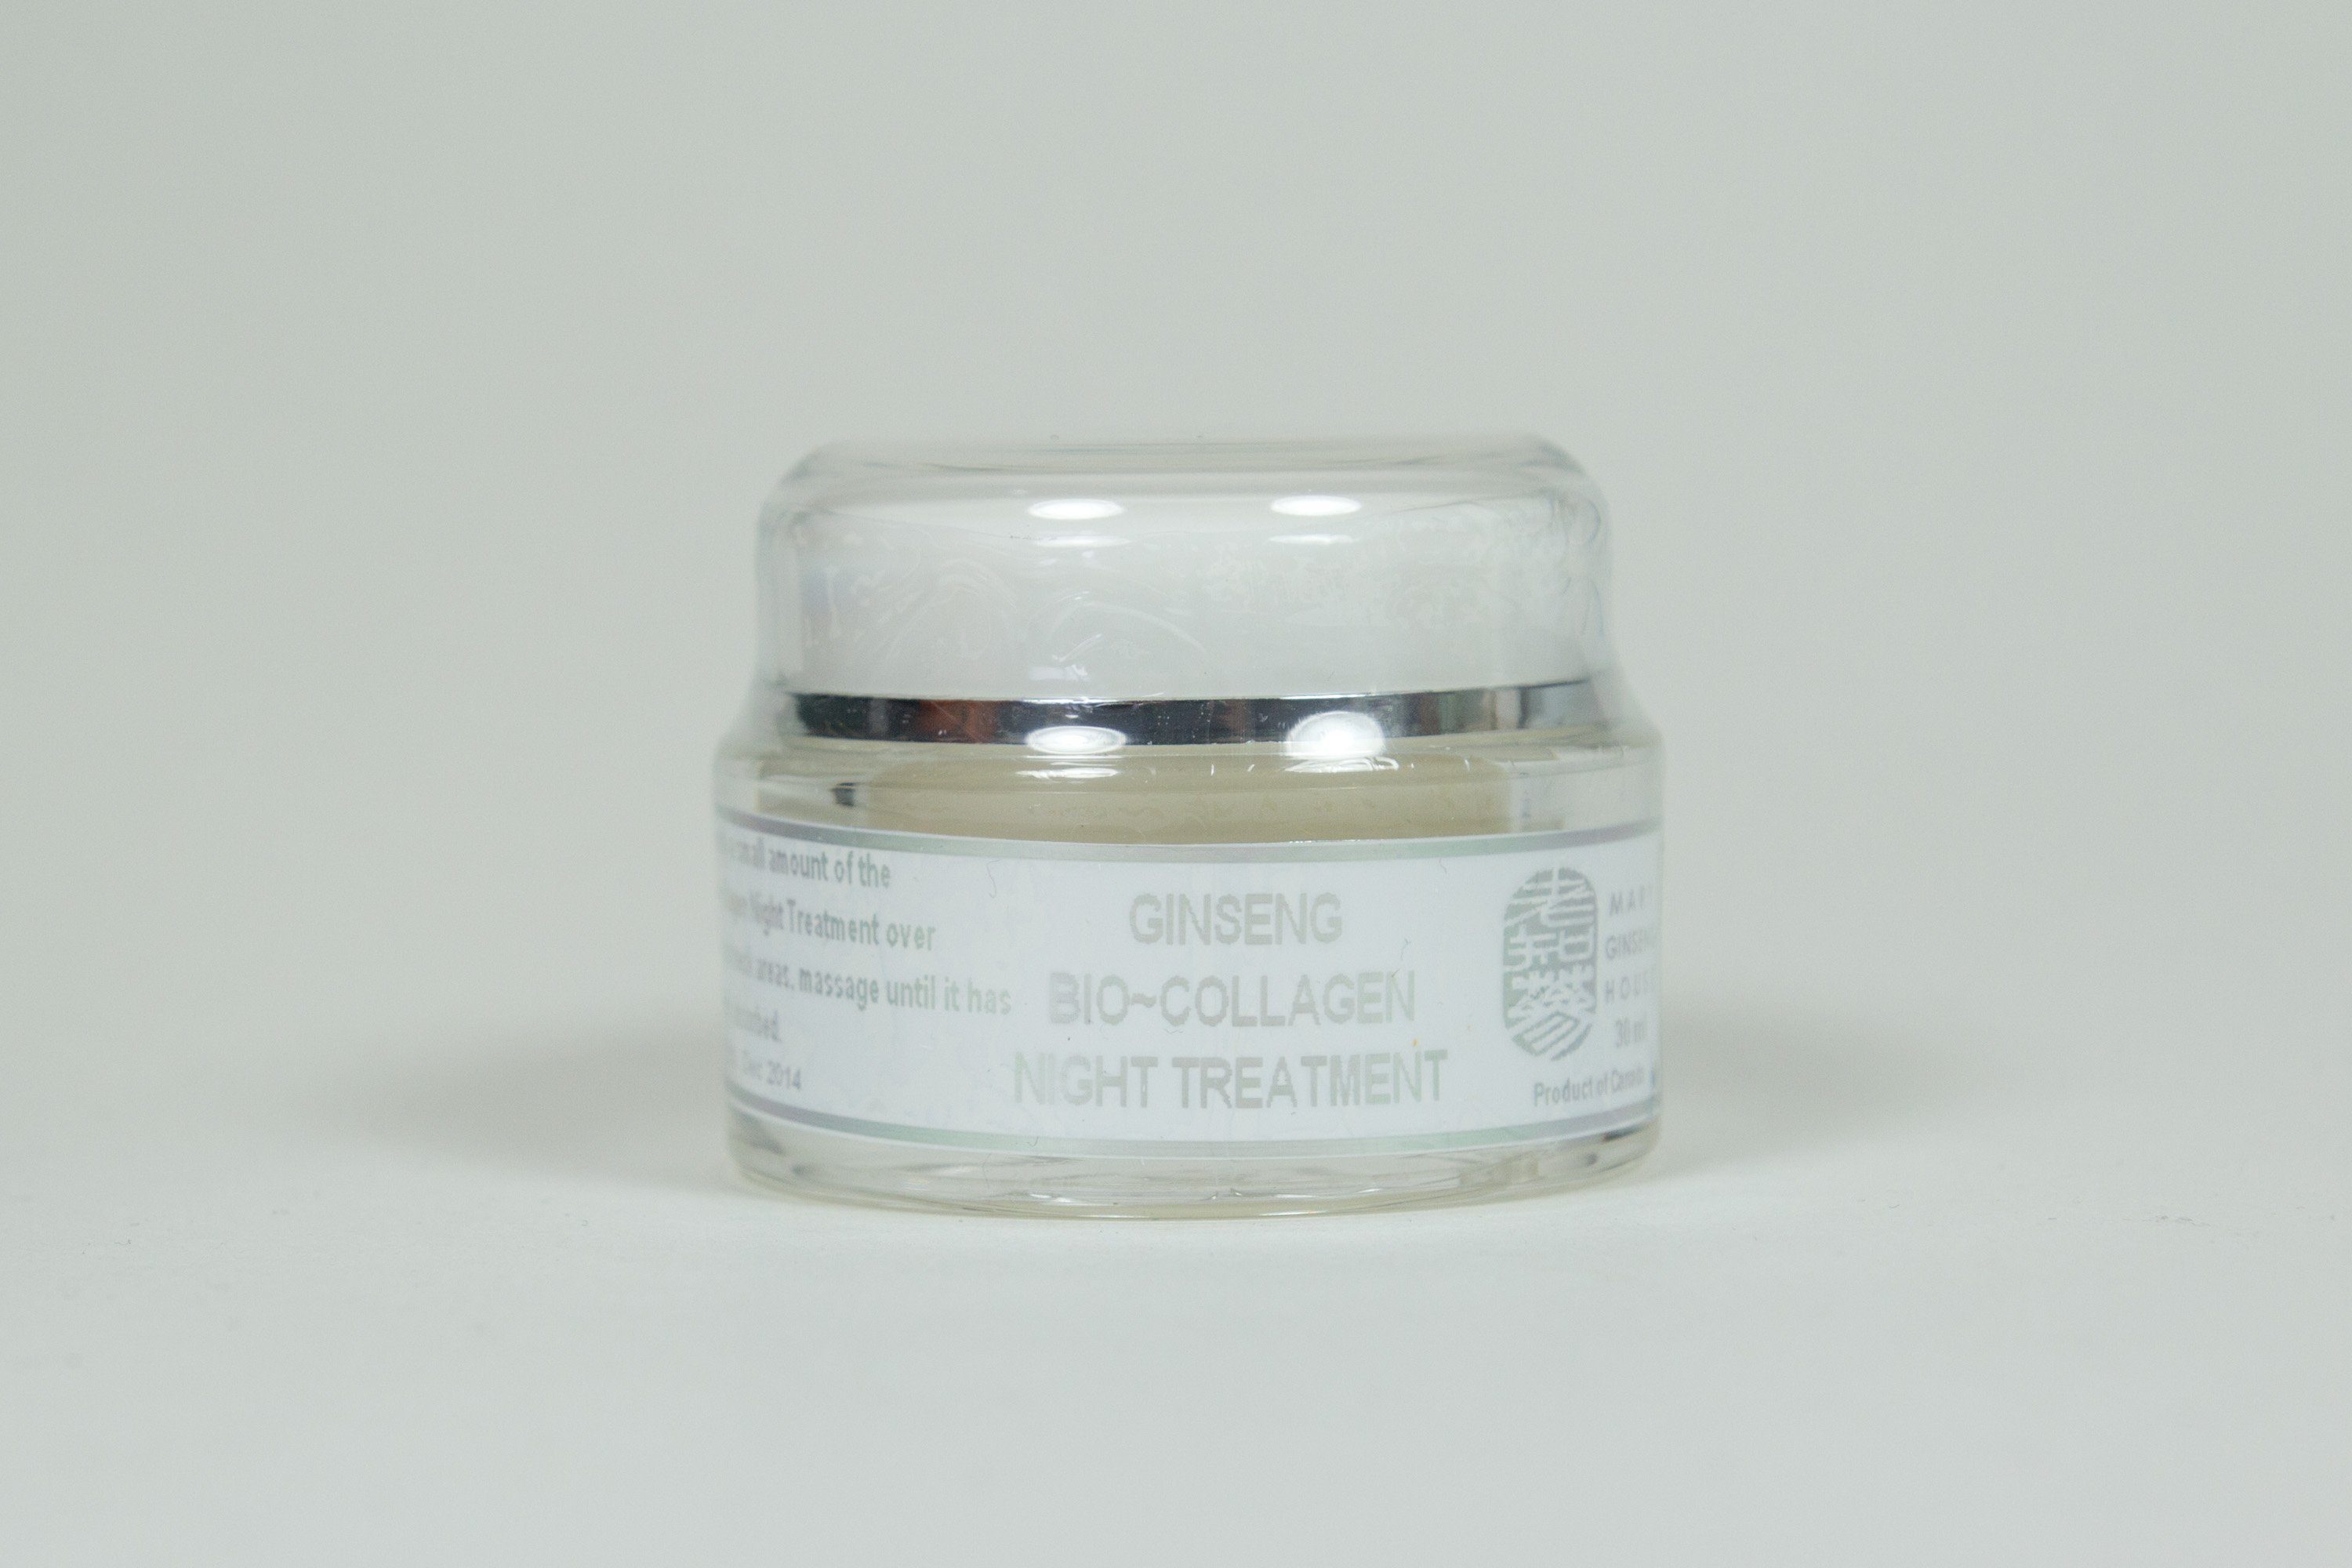 Bio-Collagen Night Treatment (30 ml)